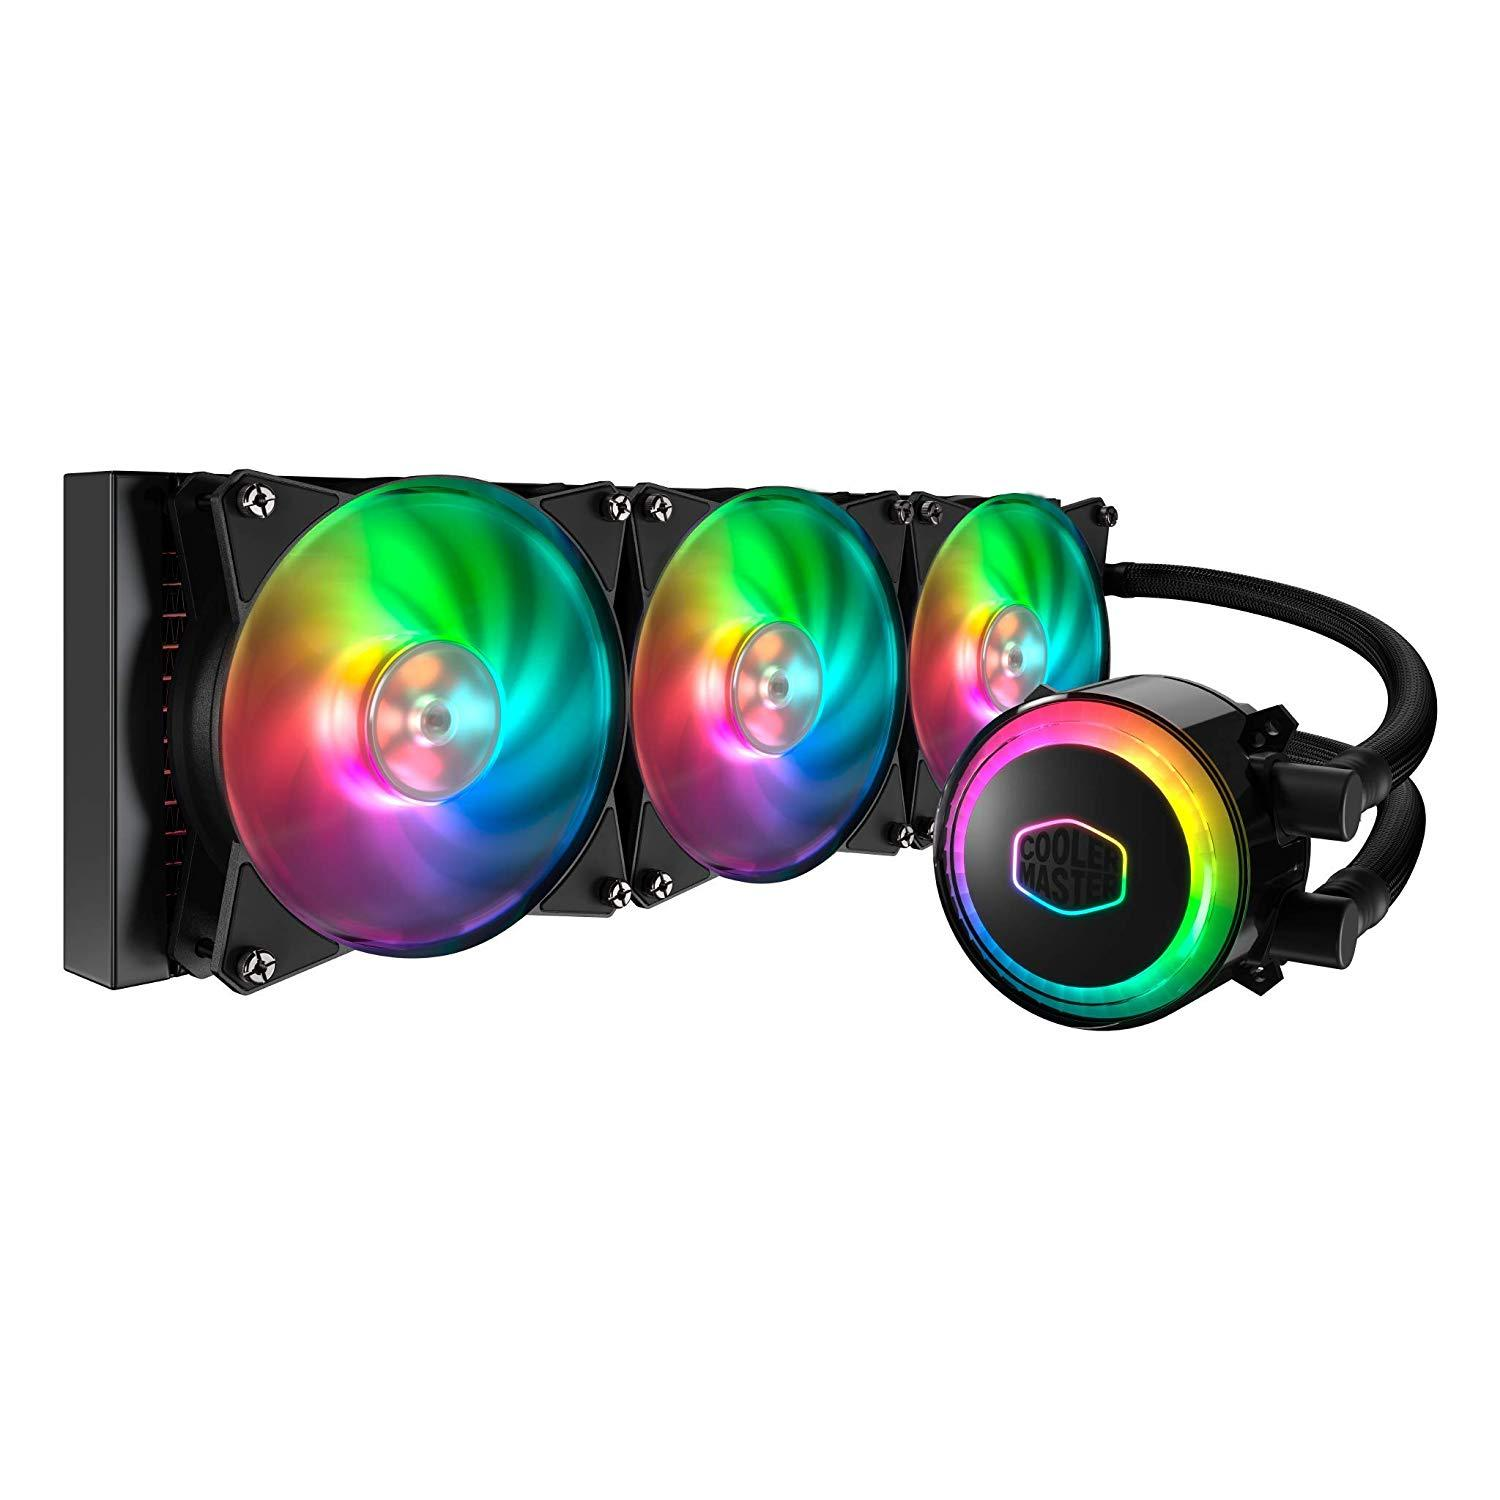 Cooler MasterLiquid ML360R RGB All-in-one Triple 120mm ARGB Fans CPU Liquid Cooler